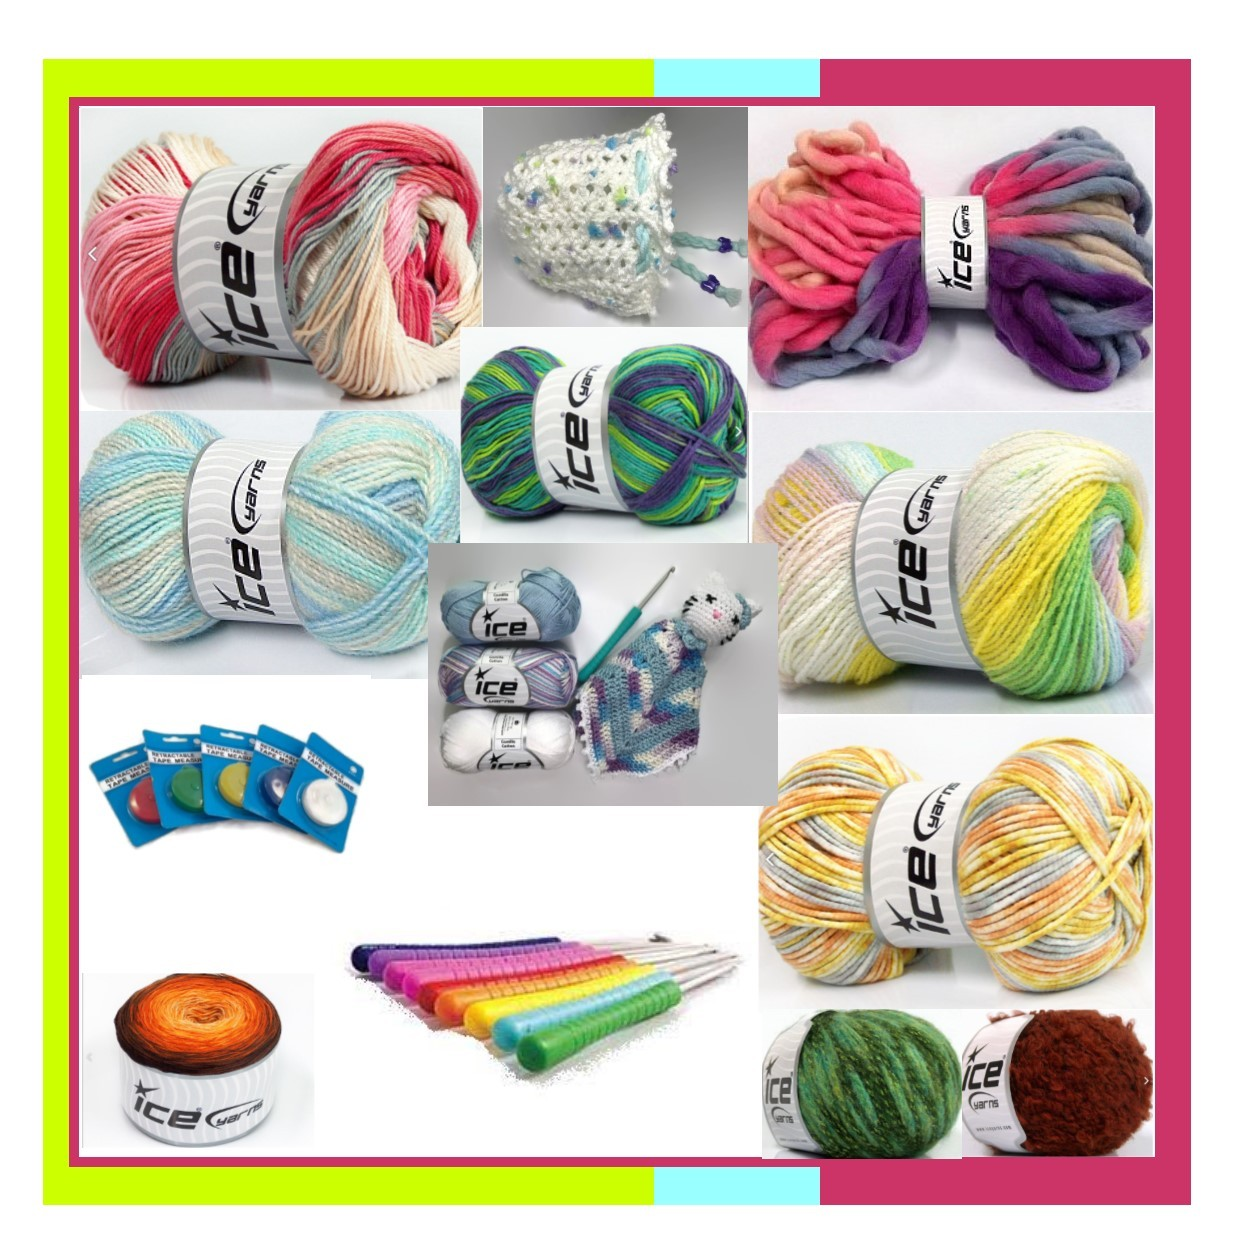 Make_it - yarns, hooks, patterns and other crochet supplies, online yarn shop